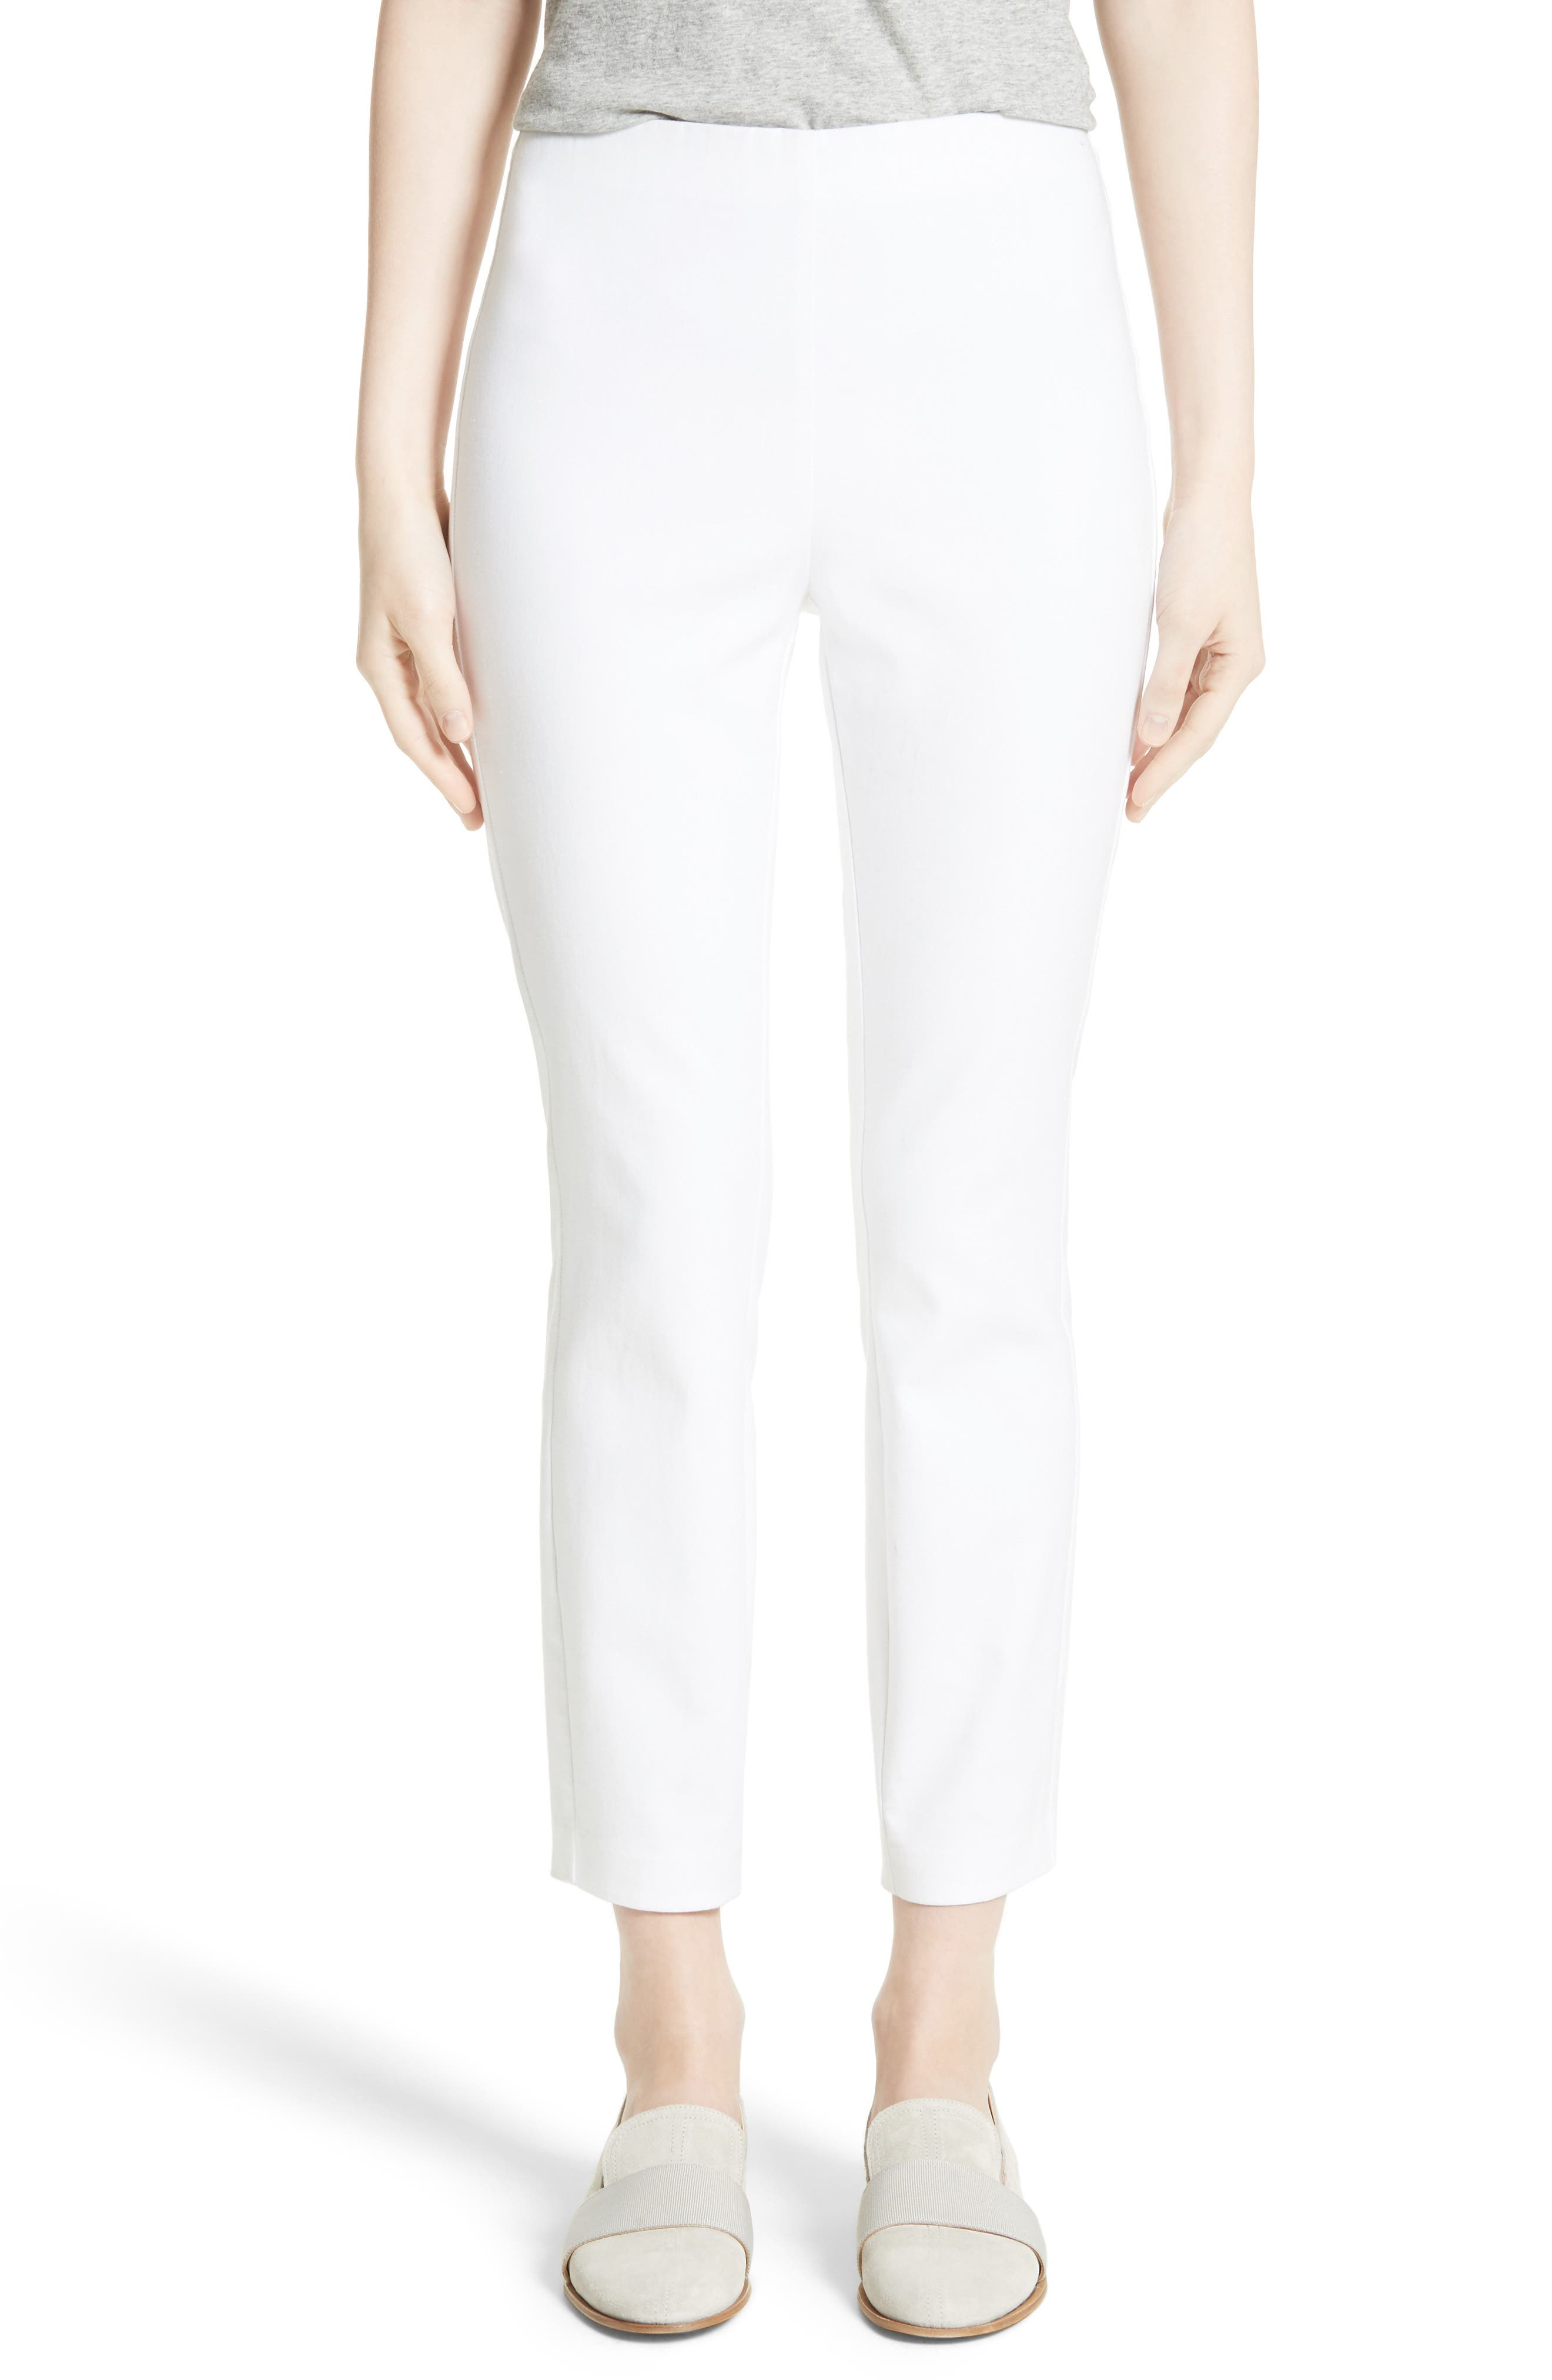 'Simone' Slim Ankle Pants,                             Main thumbnail 1, color,                             WHITE